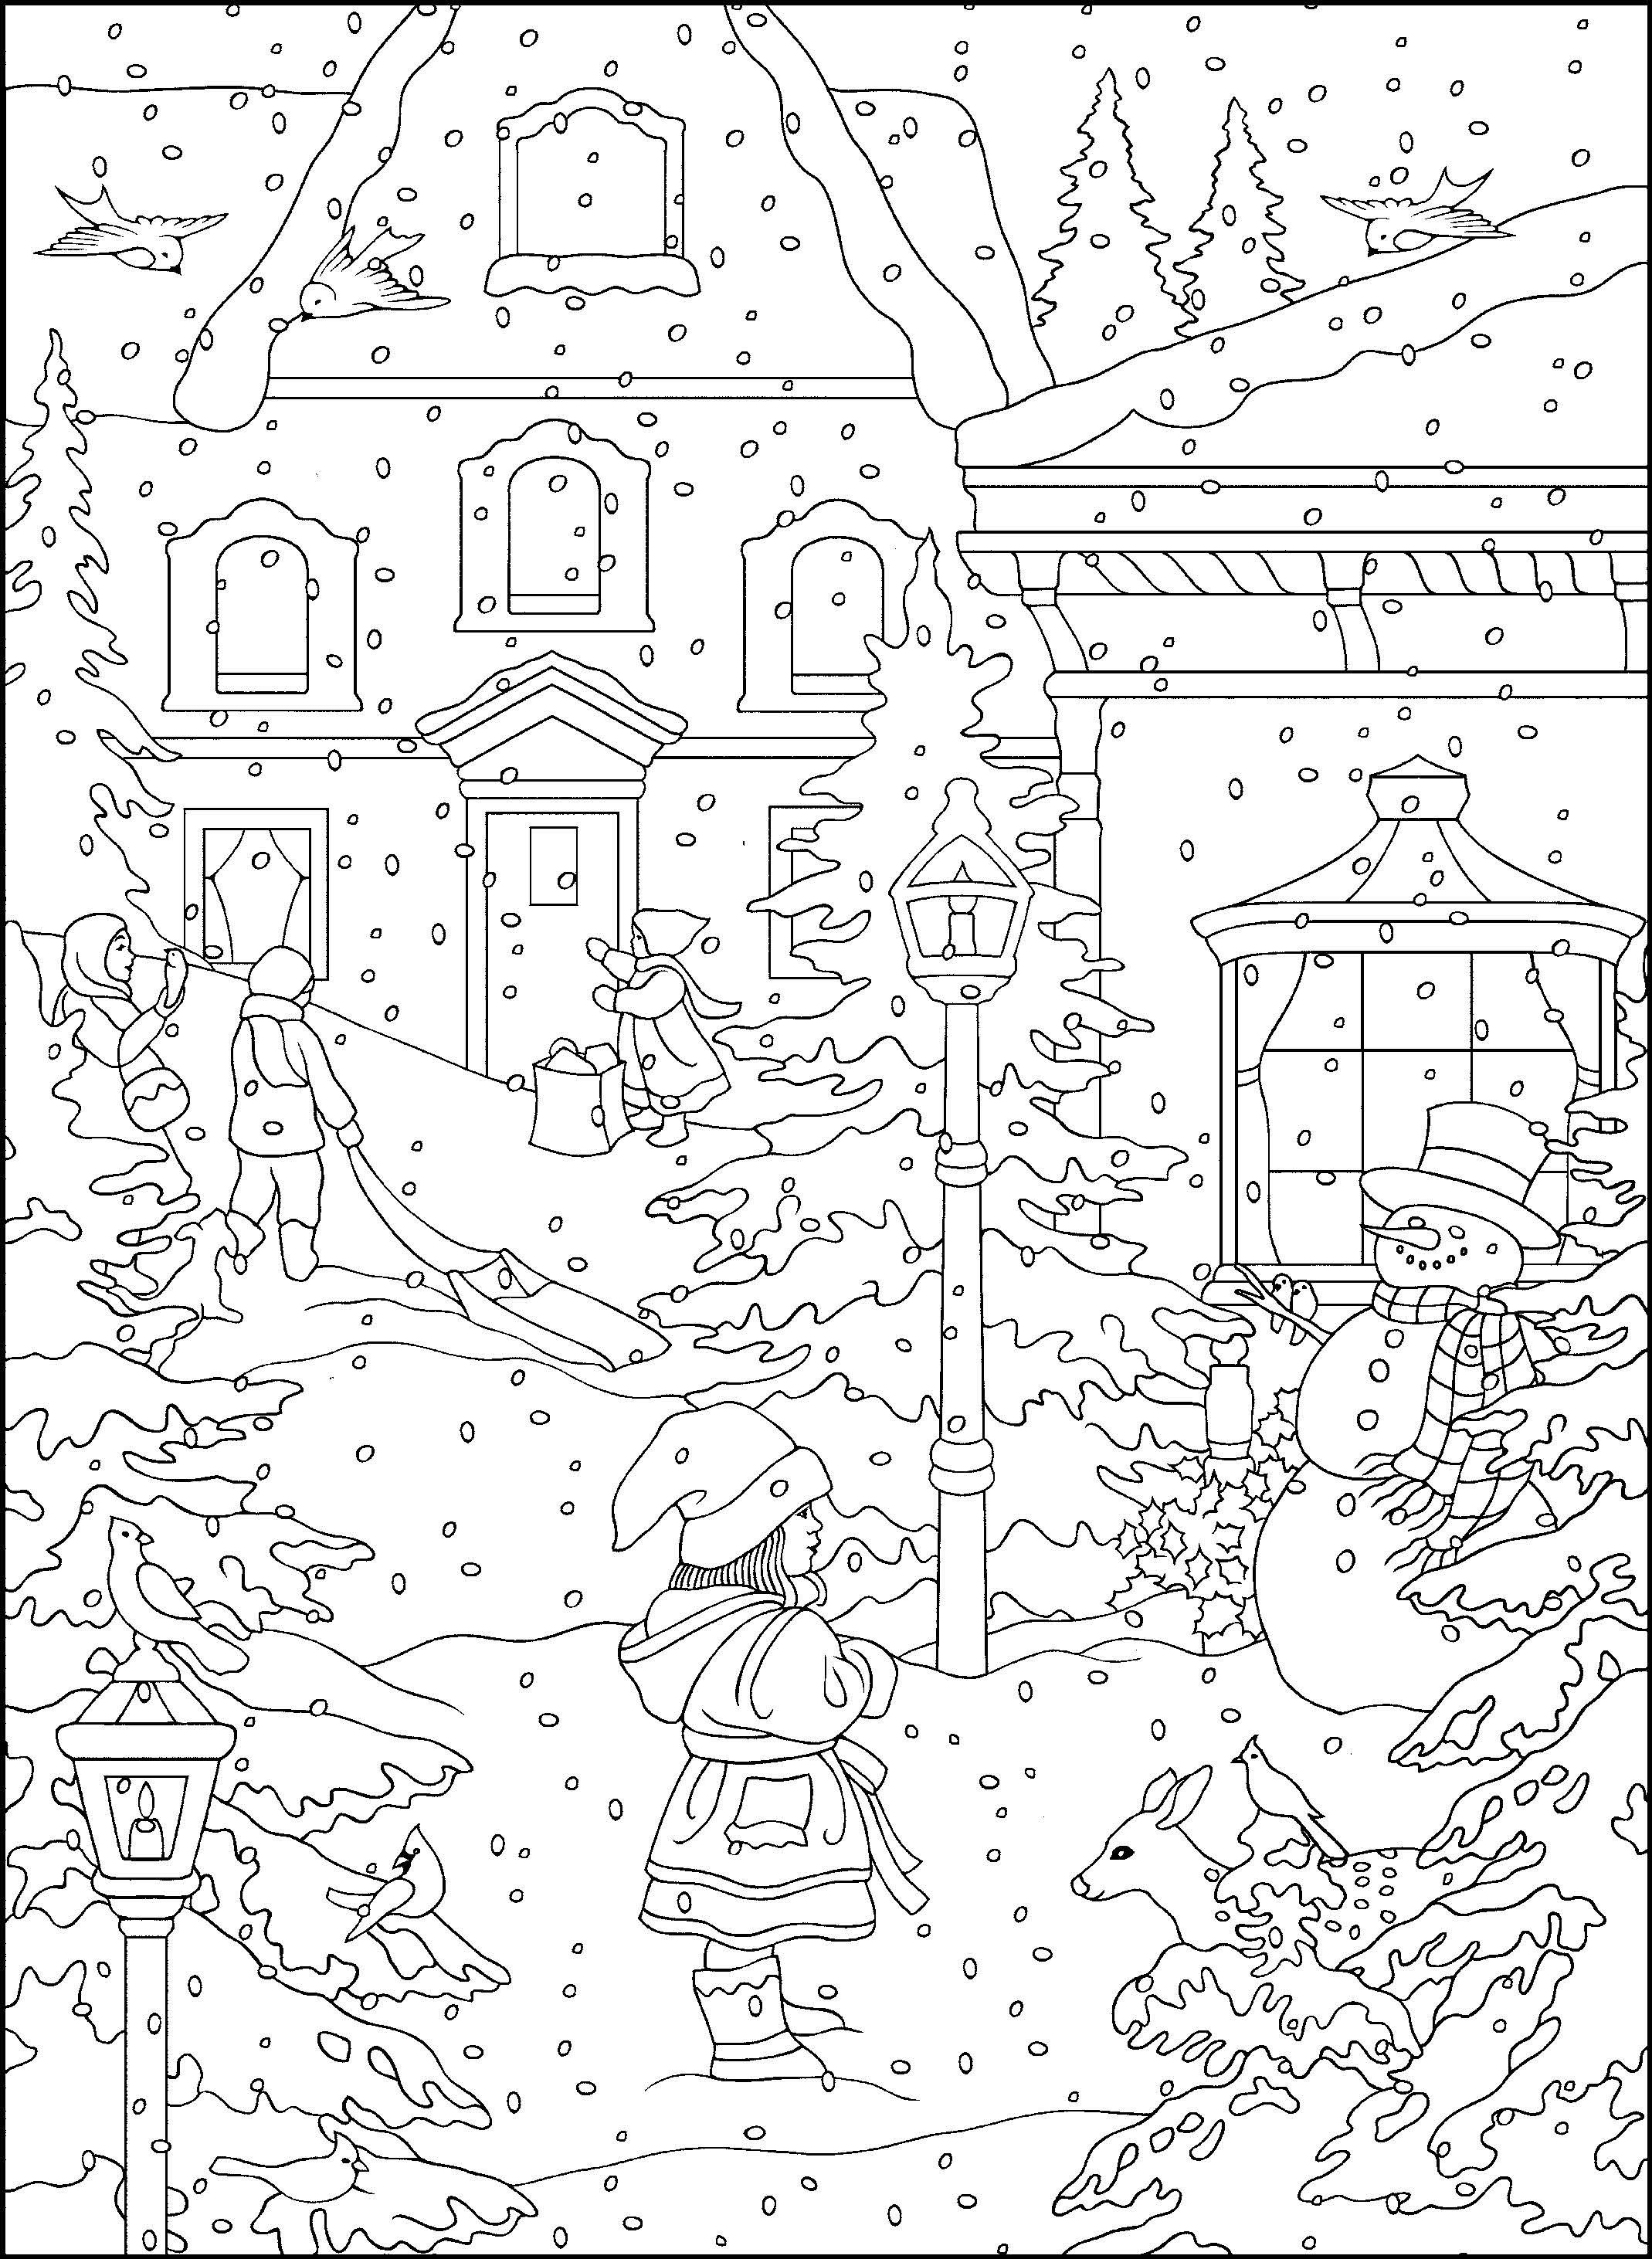 holiday coloring pages_page_4_image_0001jpg jpeg image 2139 2925 pixels scaled - Holiday Coloring